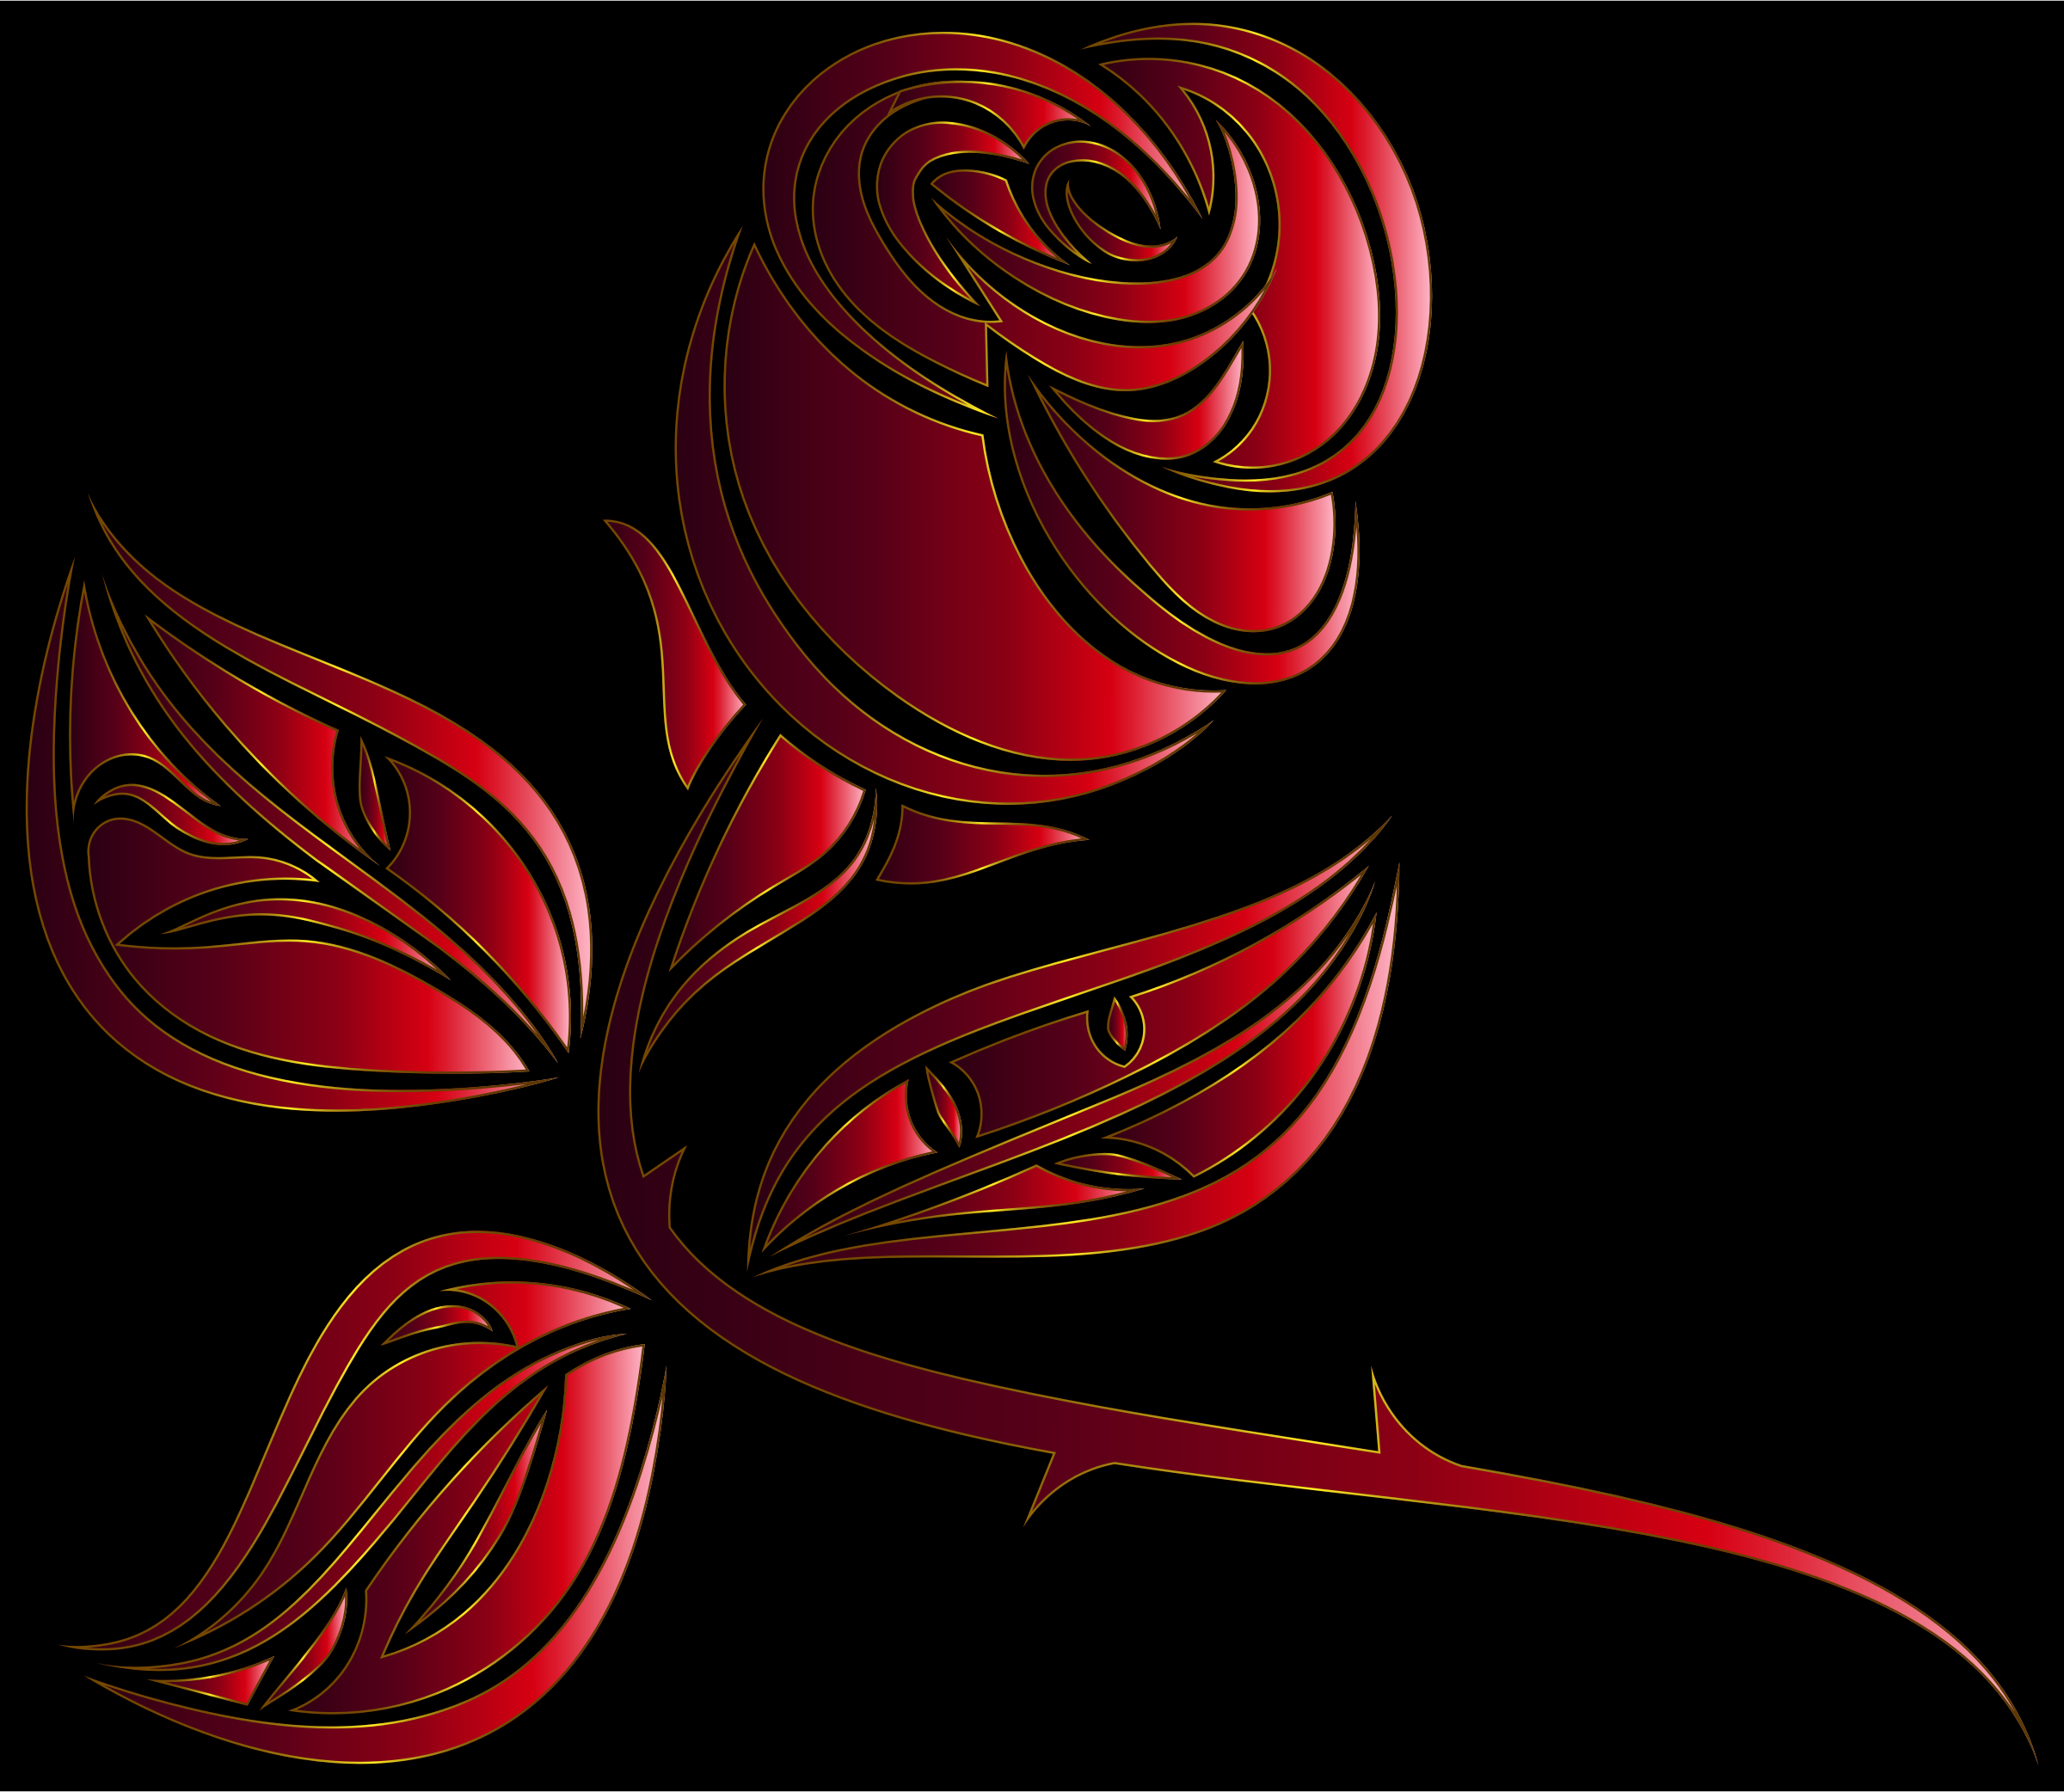 Stylized Rose Extended 8 by GDJ